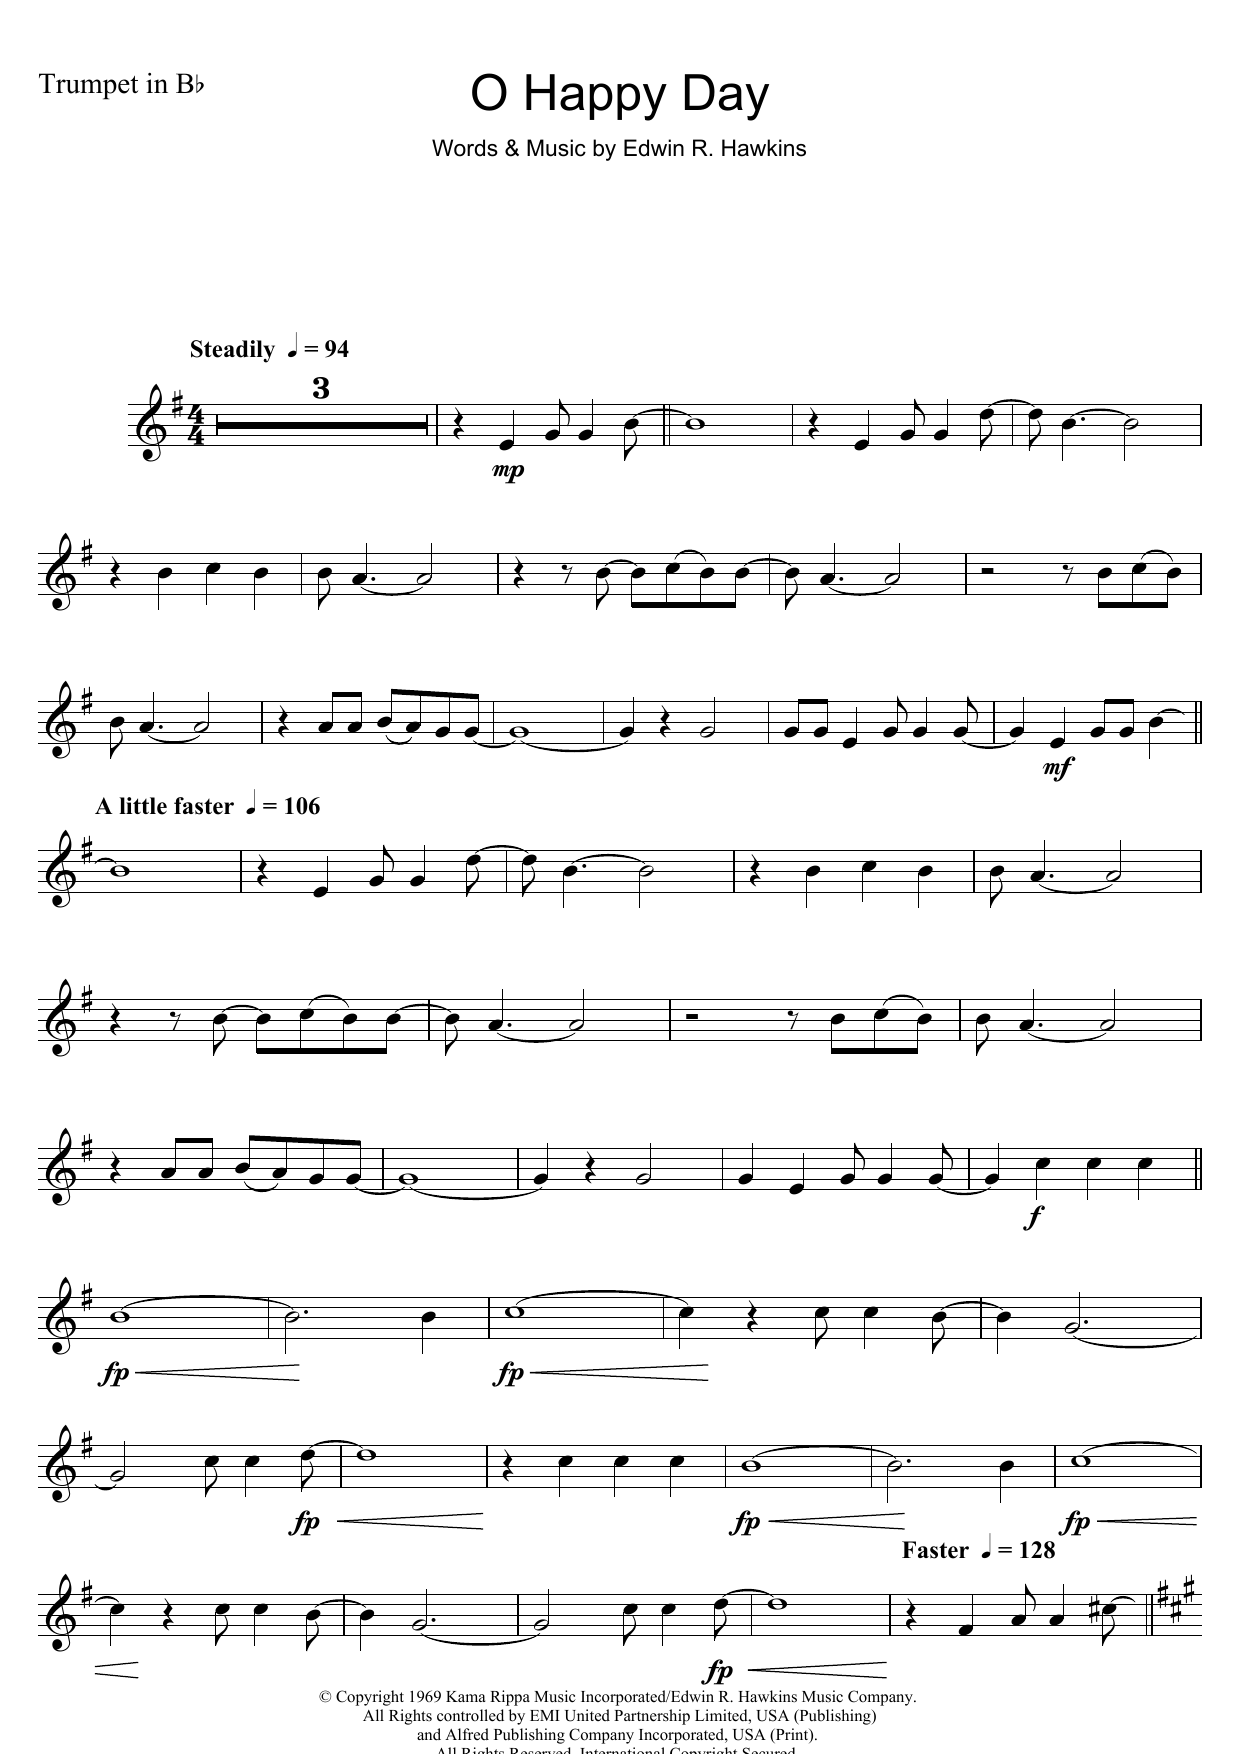 Oh Happy Day Sheet Music